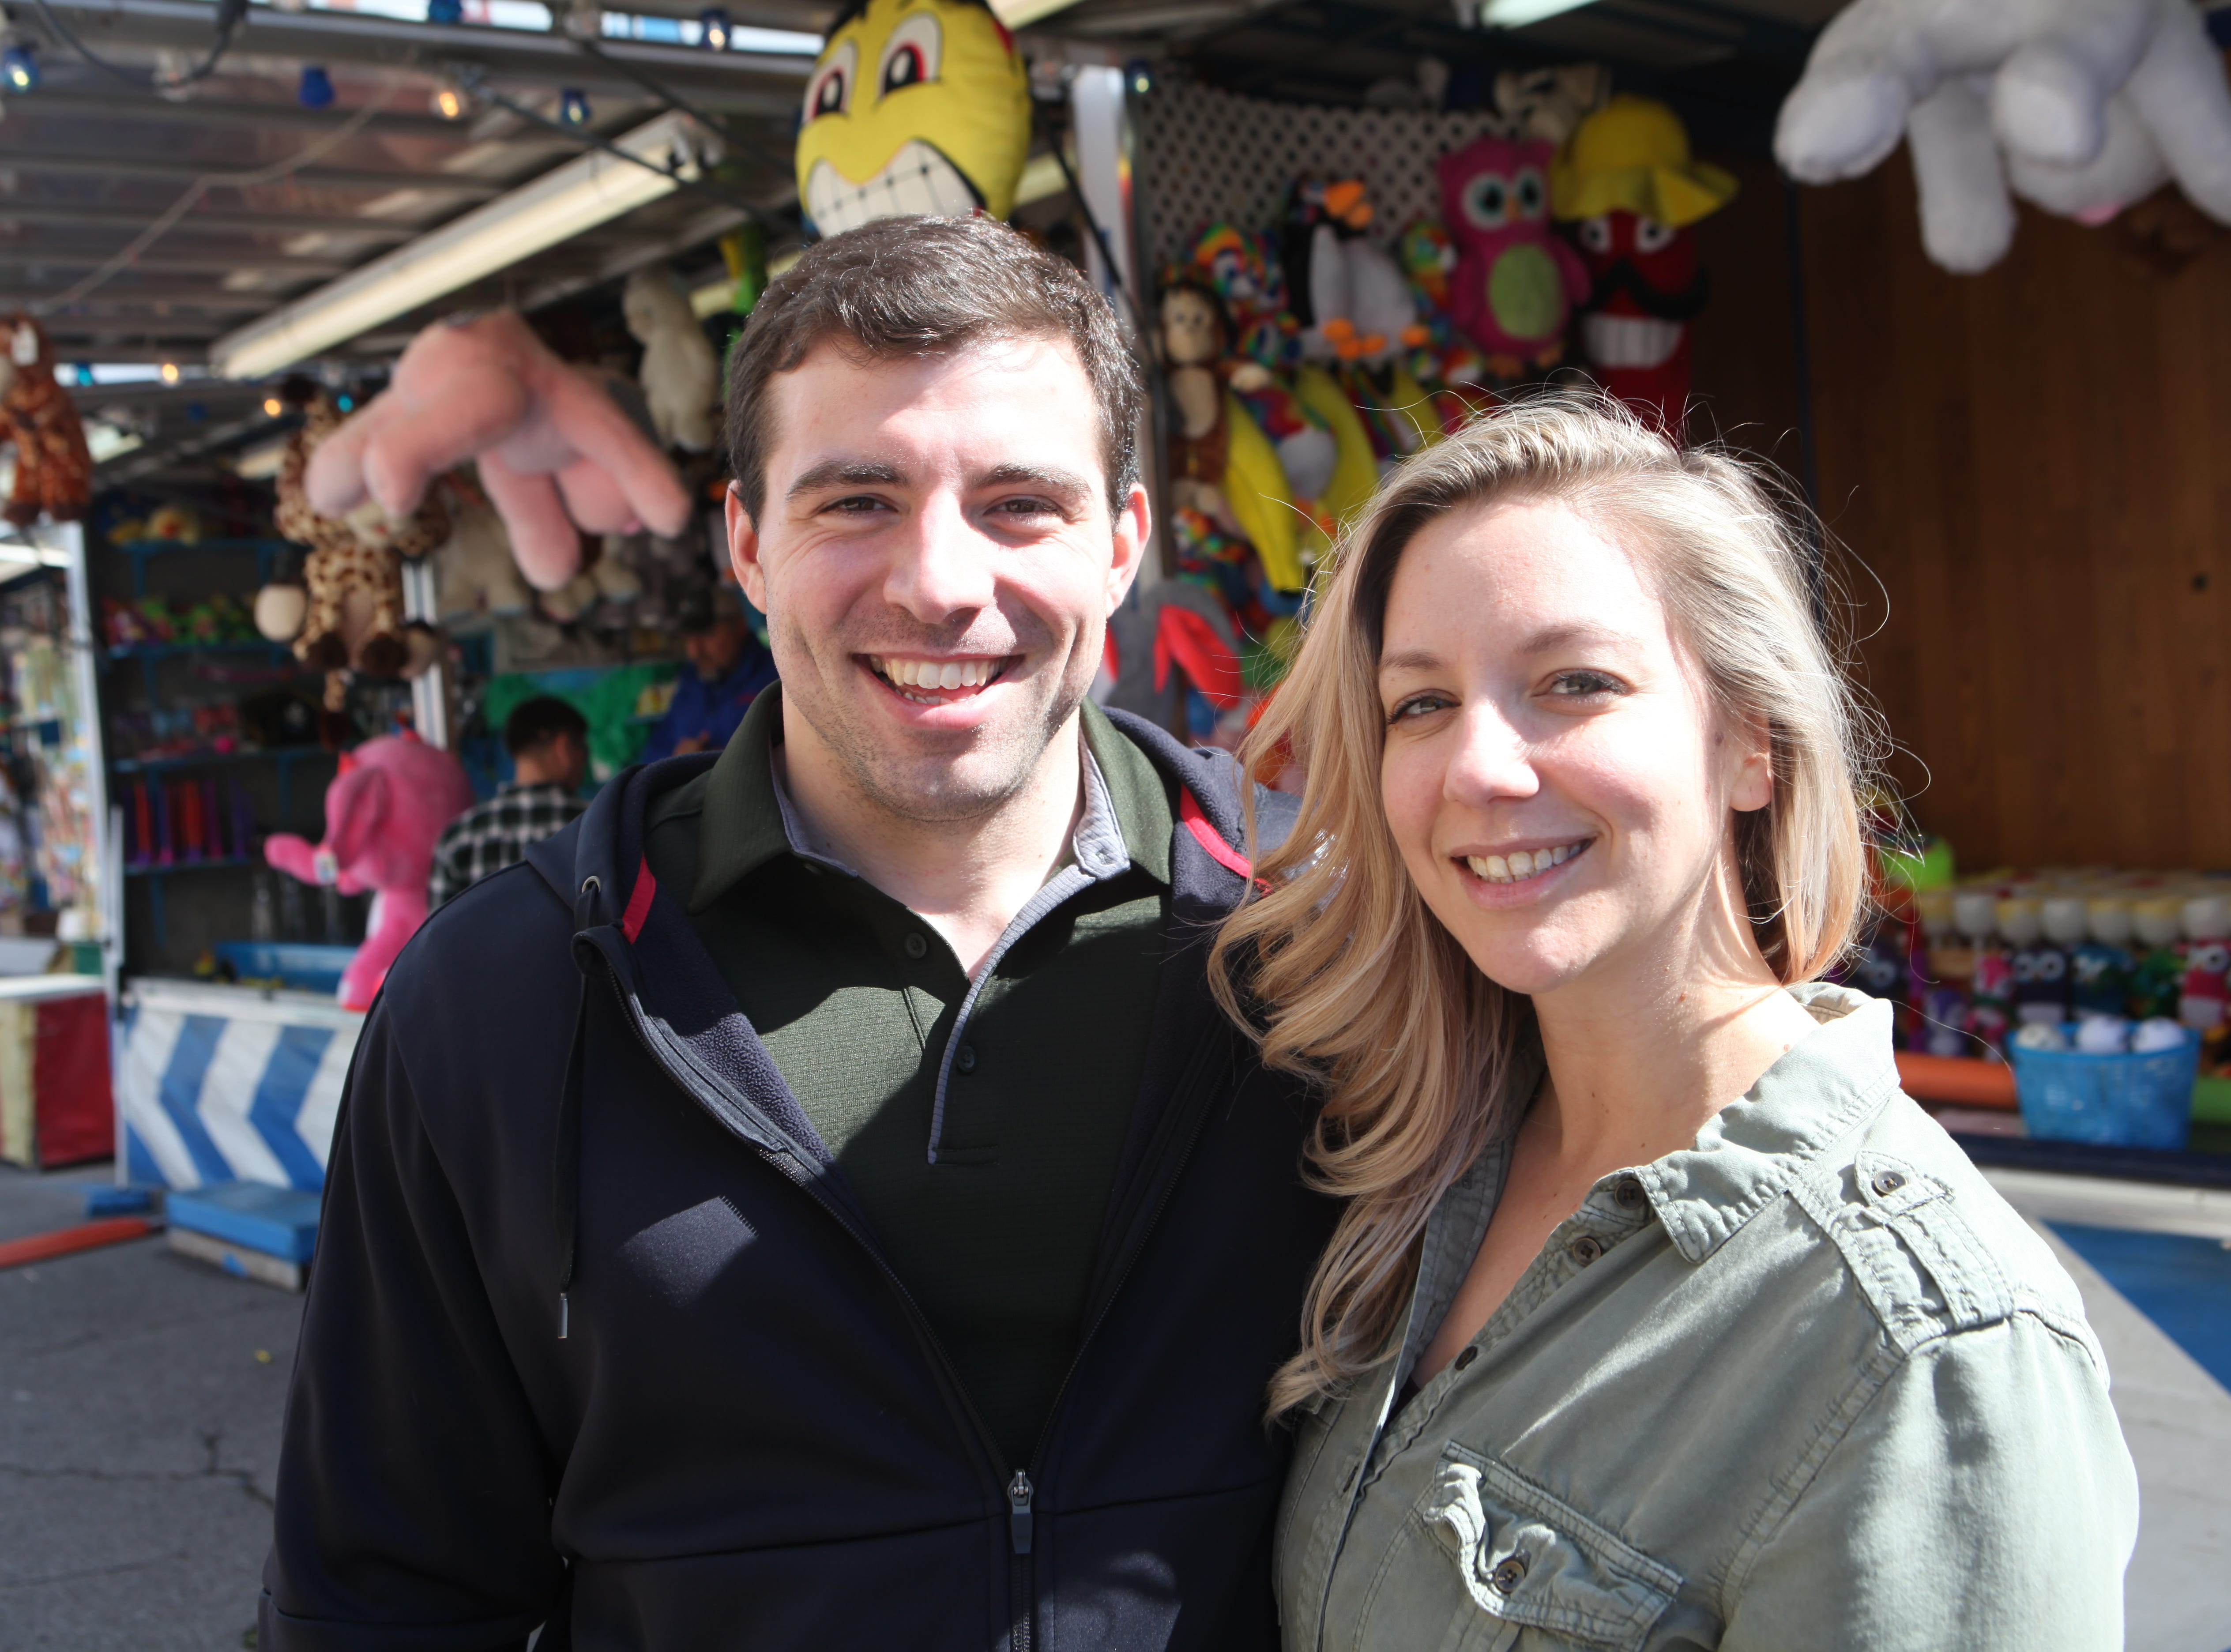 Casey and Chris Werner at Governor's Square Mall's Spring Carnival on Saturday, April 20, 2019.